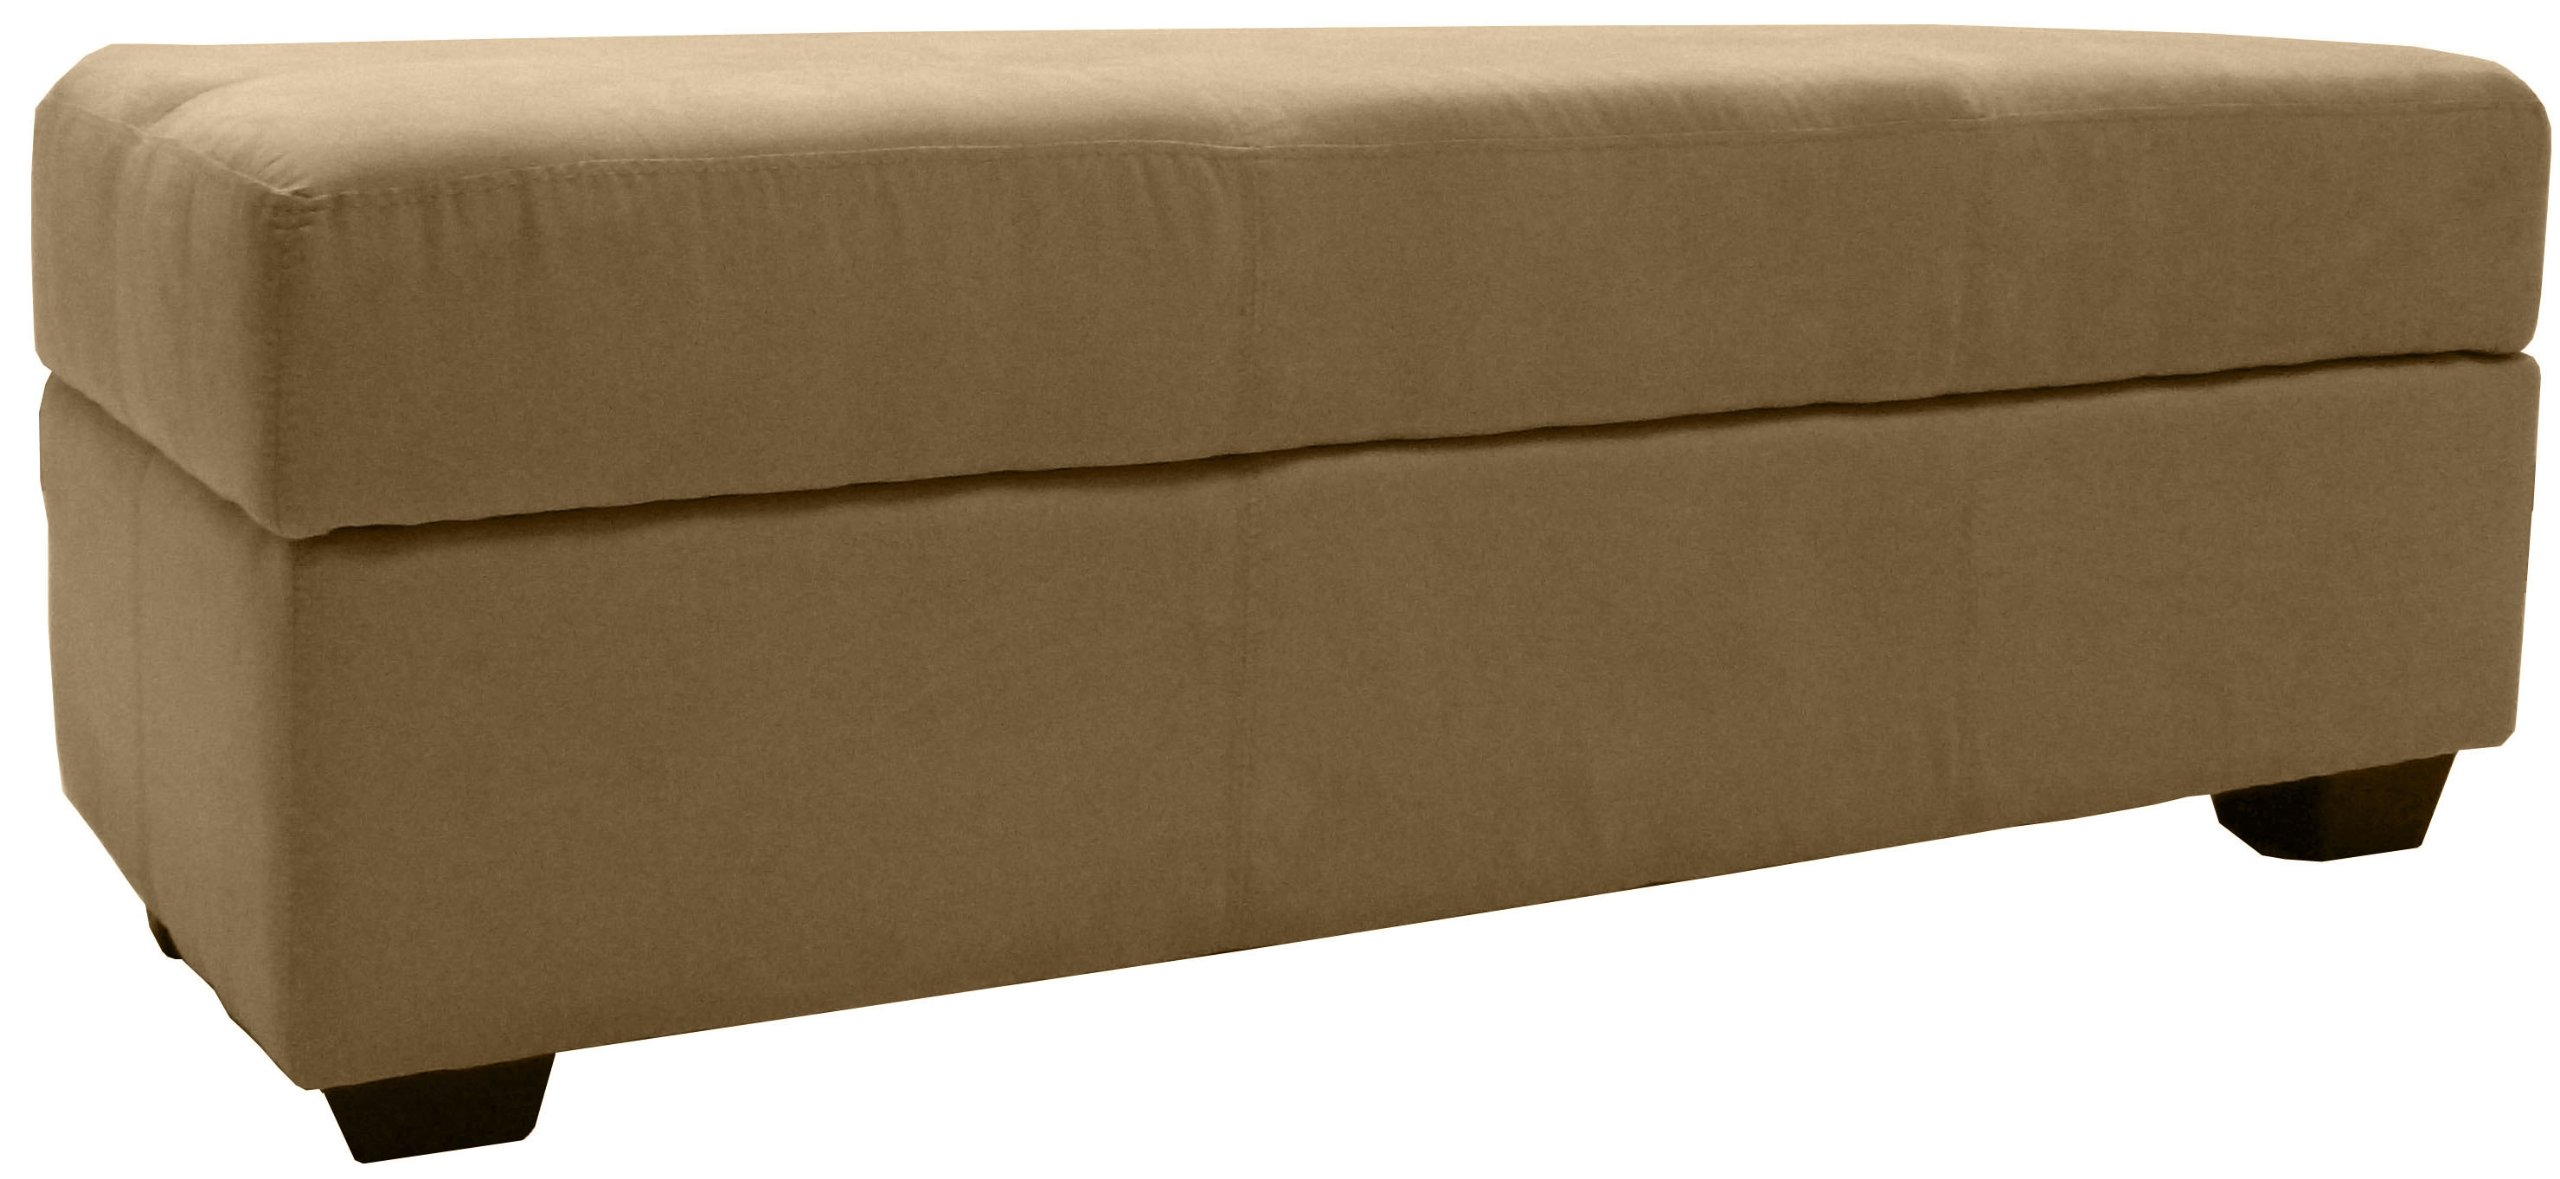 Microfiber Suede Upholstered Tufted Padded Hinged Storage Ottoman Bench, 48 by 19 by 18'', Khaki